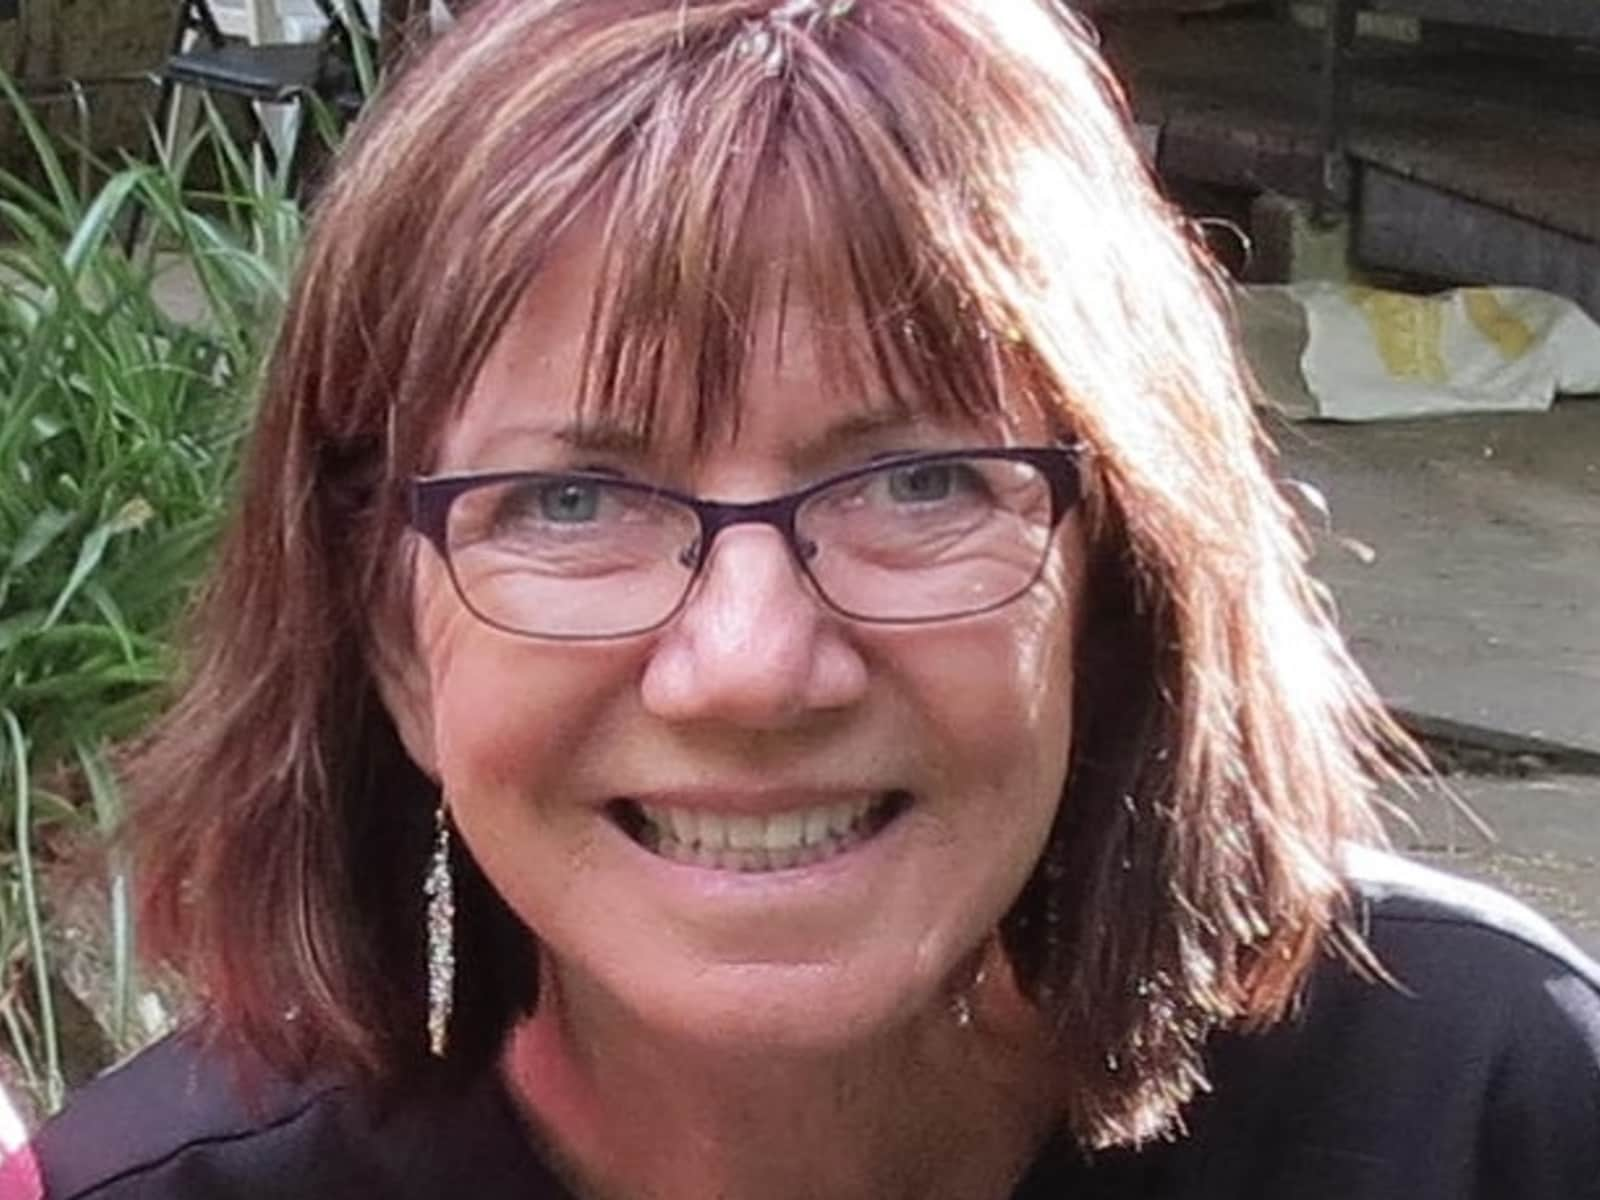 Anne-marie from Seattle, Washington, United States